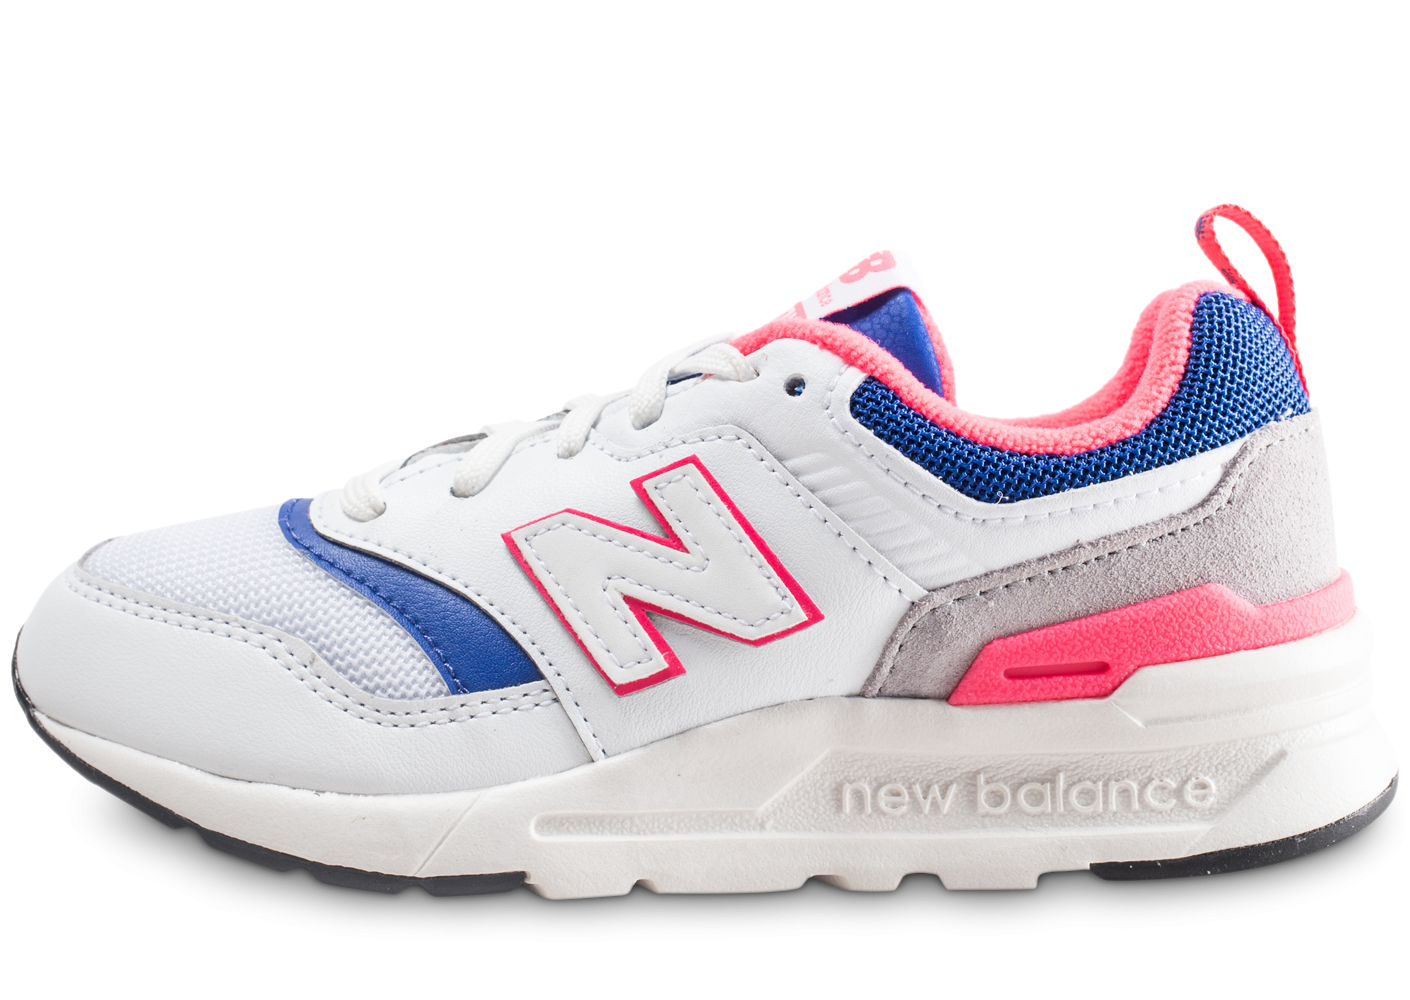 pretty nice 56ed6 65751 15728-chaussures-new-balance-997-blanc-violet-rose-enfant-vue-exterieure.png